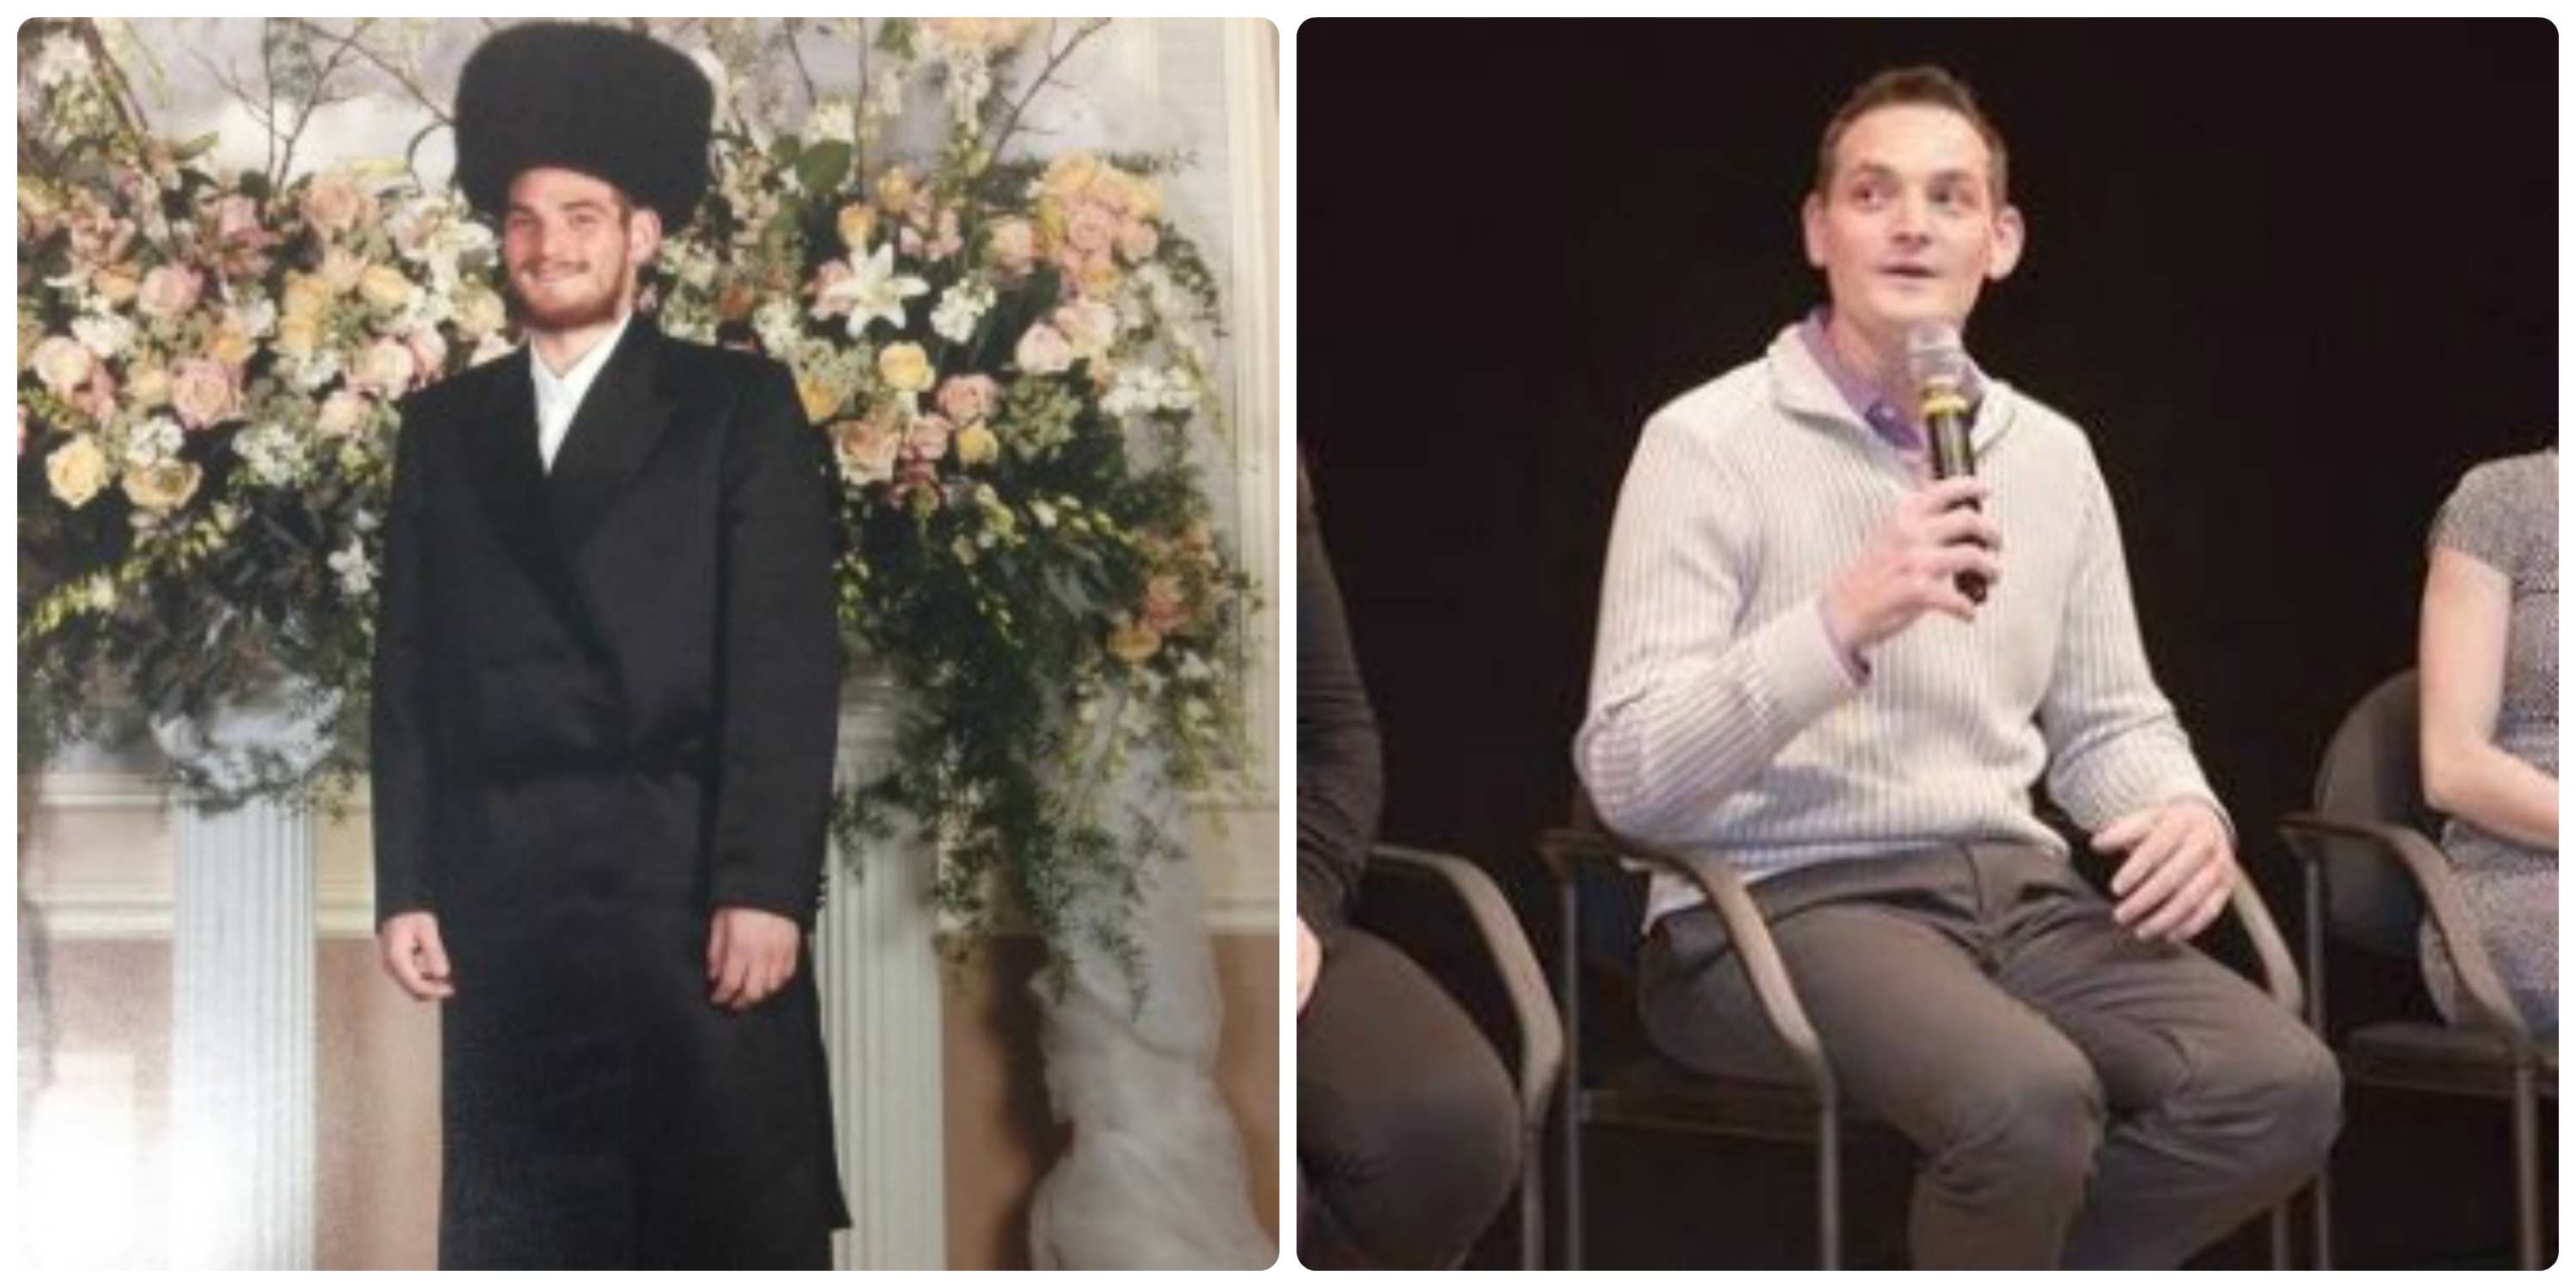 Israel Irenstein before he left Orthodoxy (left) and after (right).